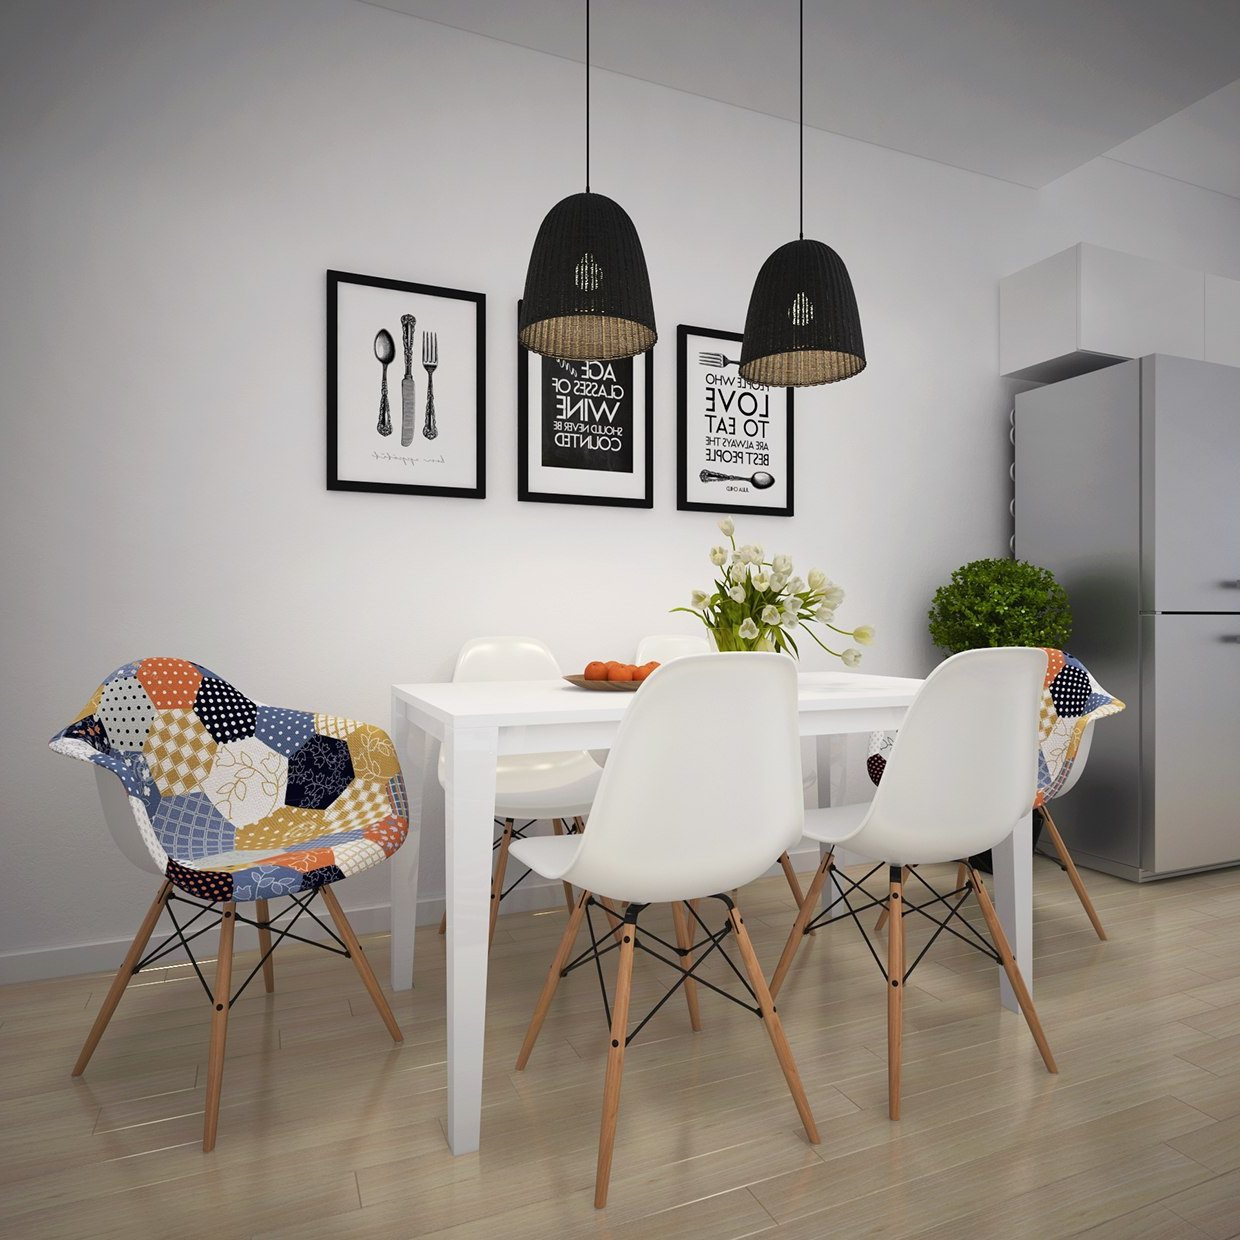 modern dining room decor with mid-century modern dining chairs